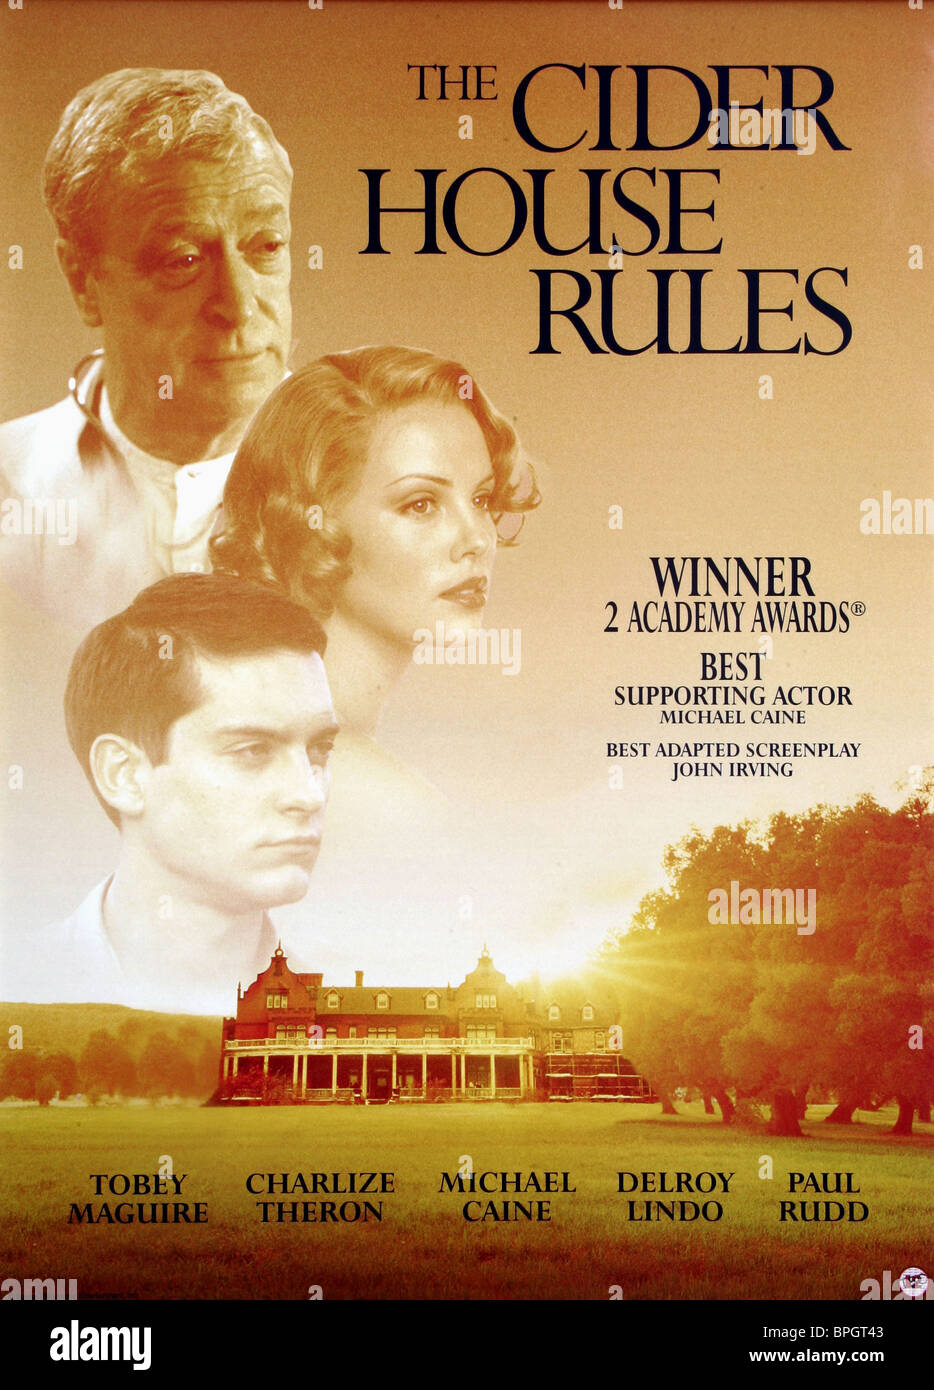 the cider house rules 『サイダーハウス・ルール』(the cider house rules)は、1999年製作のアメリカ映画。原作はジョン・アーヴィングの同名小説『.